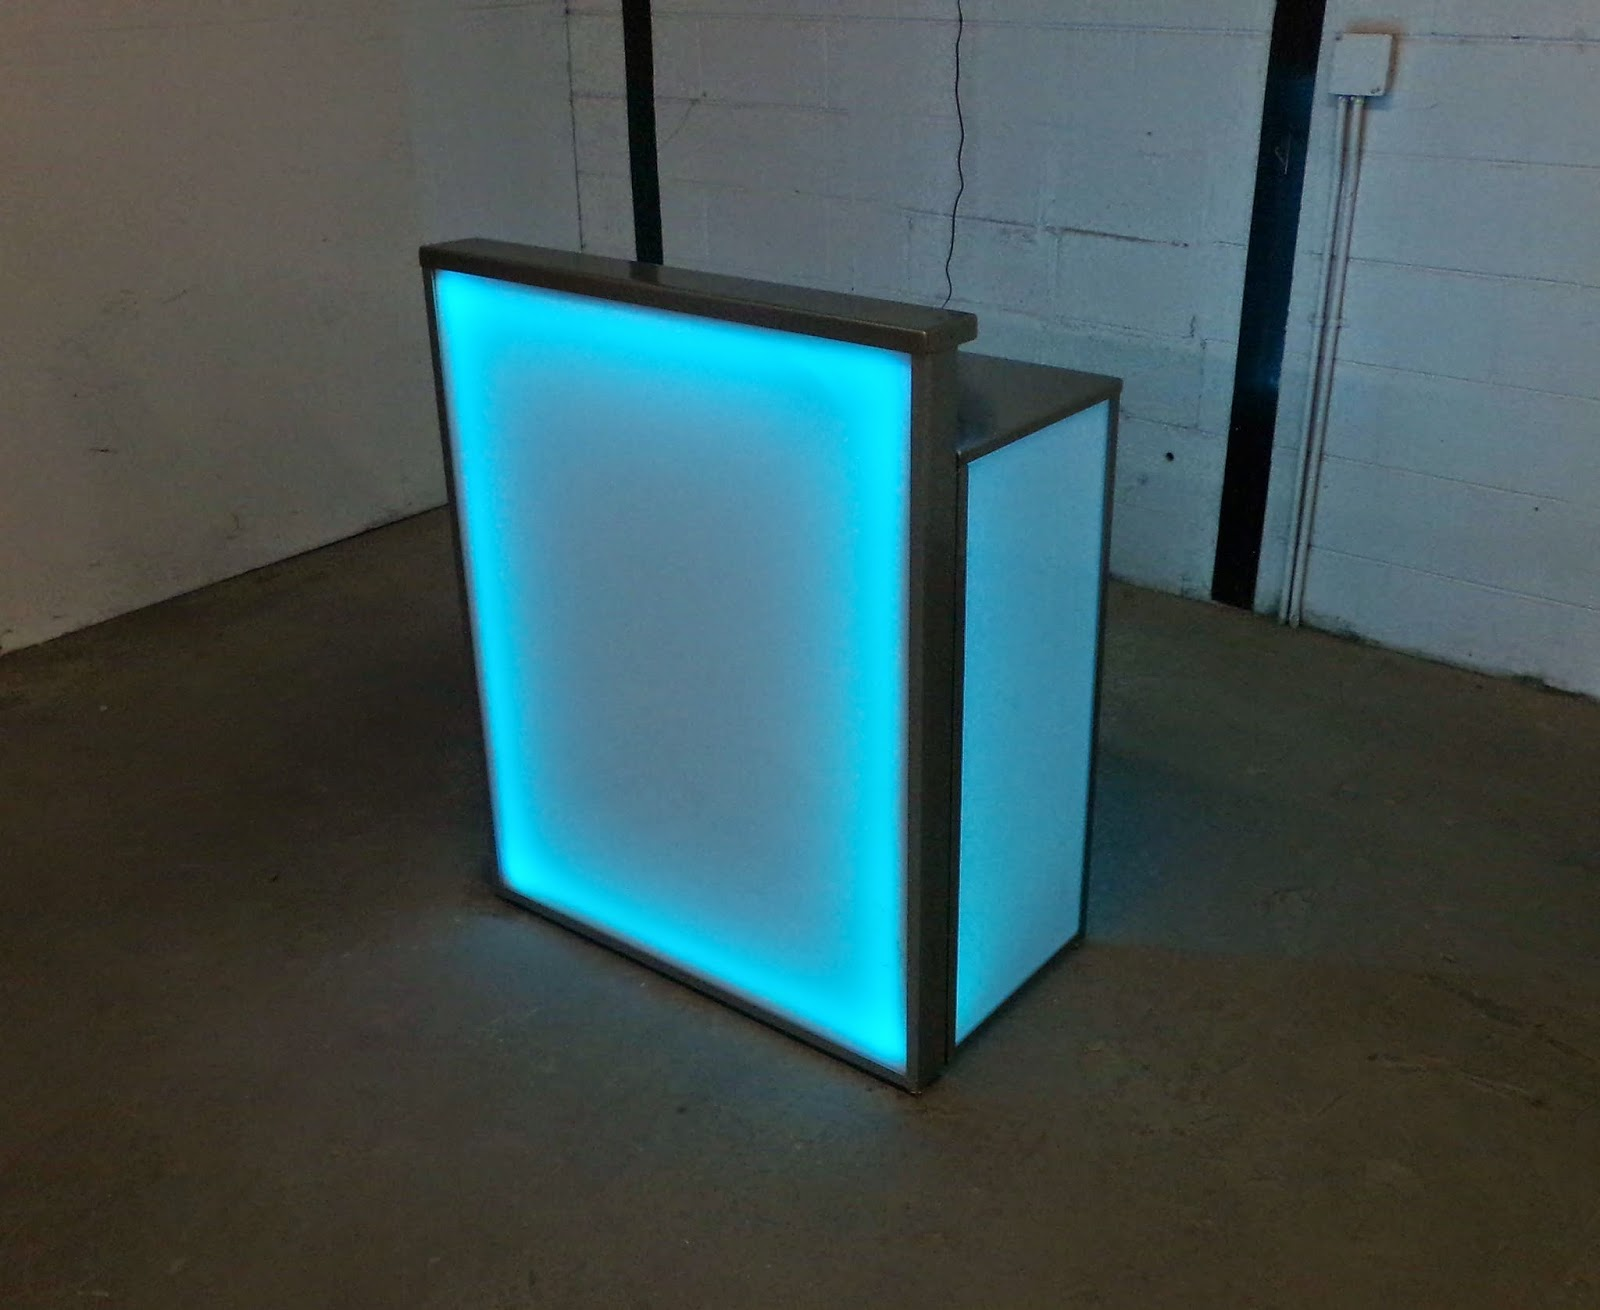 Here Is The Portable Lighted Mini Bar And Valet Table From BarChefs.com.